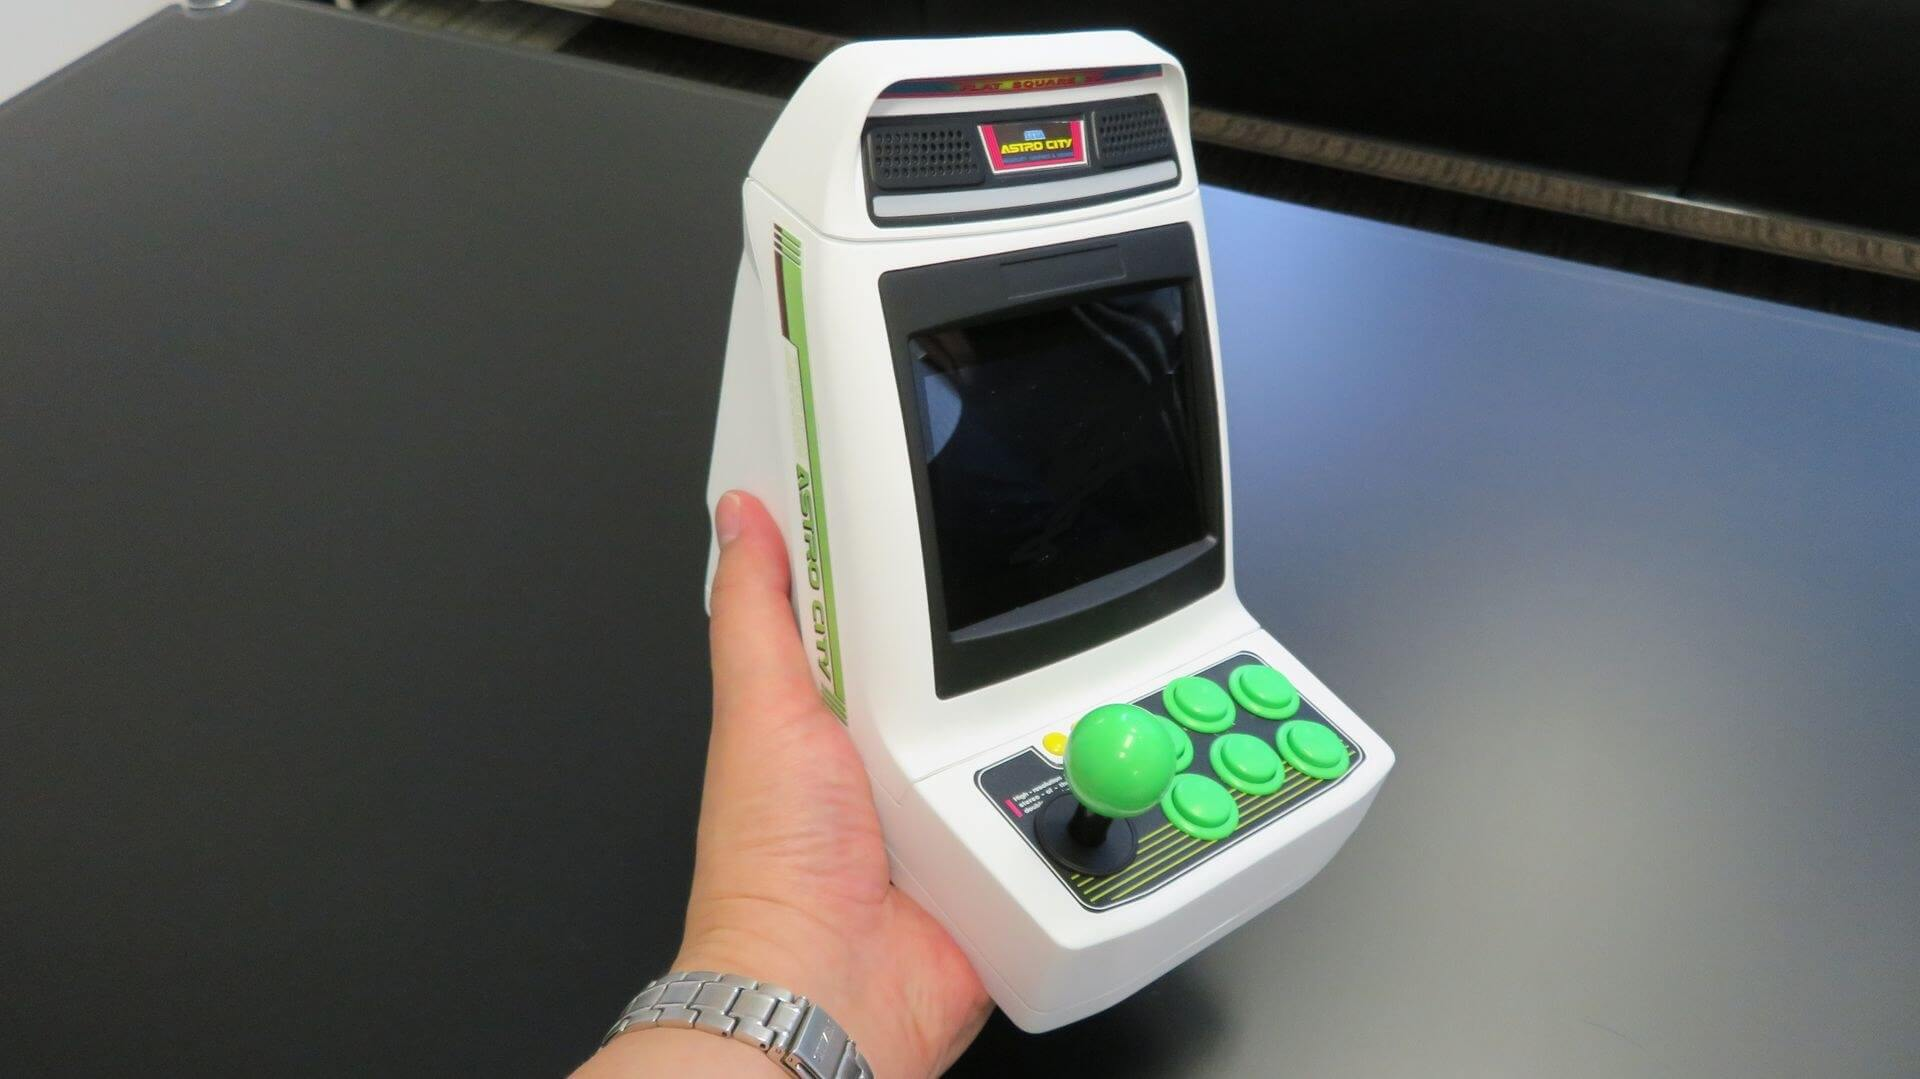 The Astro City Arcade Mini puts a tiny arcade cabinet in the palm of your hand